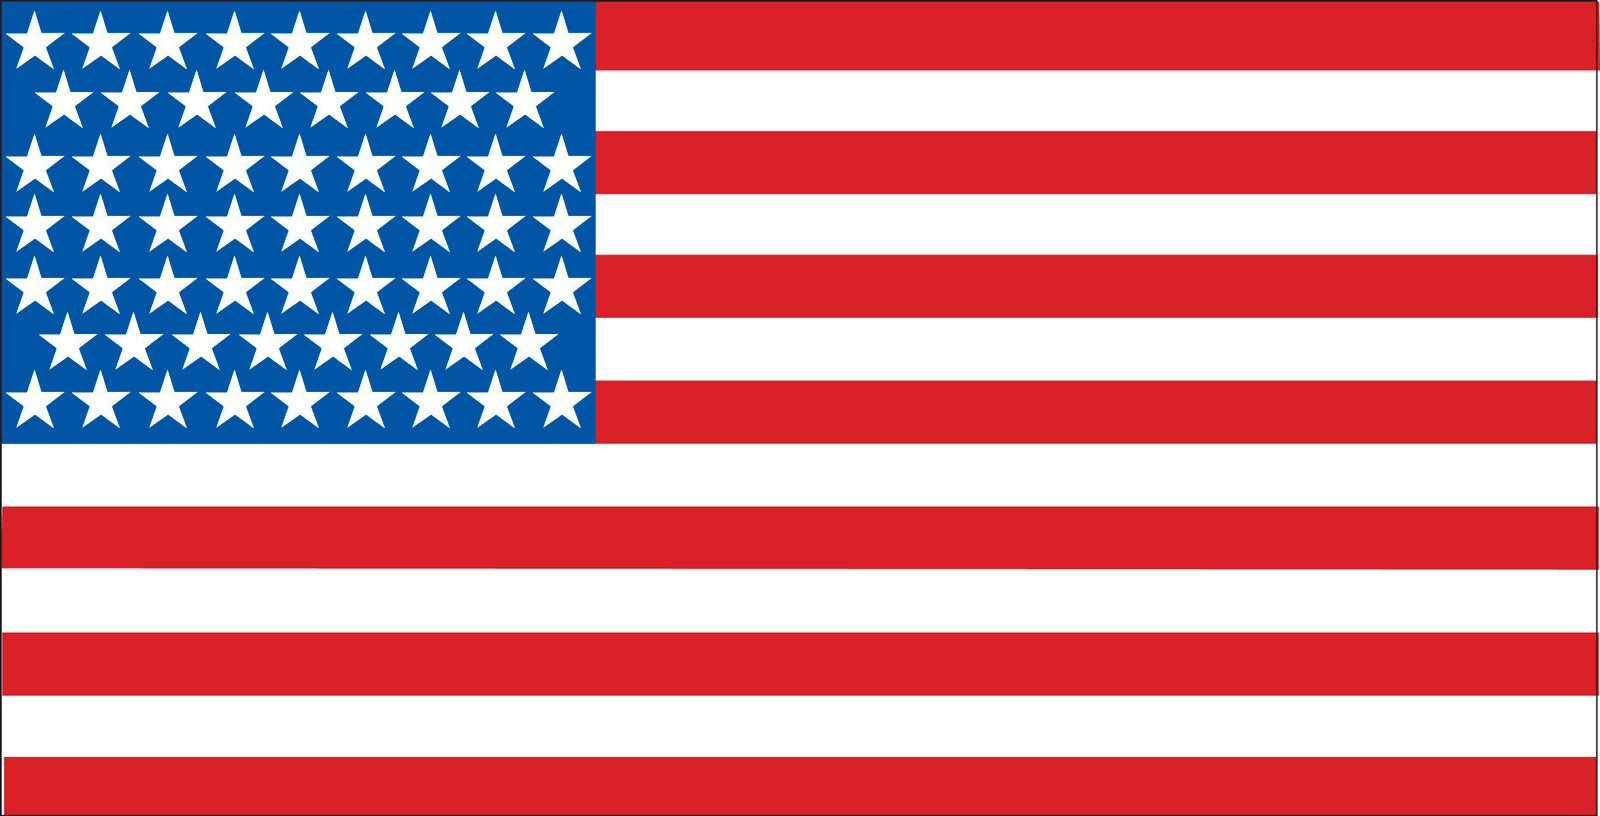 usa-flag-wallpaper-01.jpg